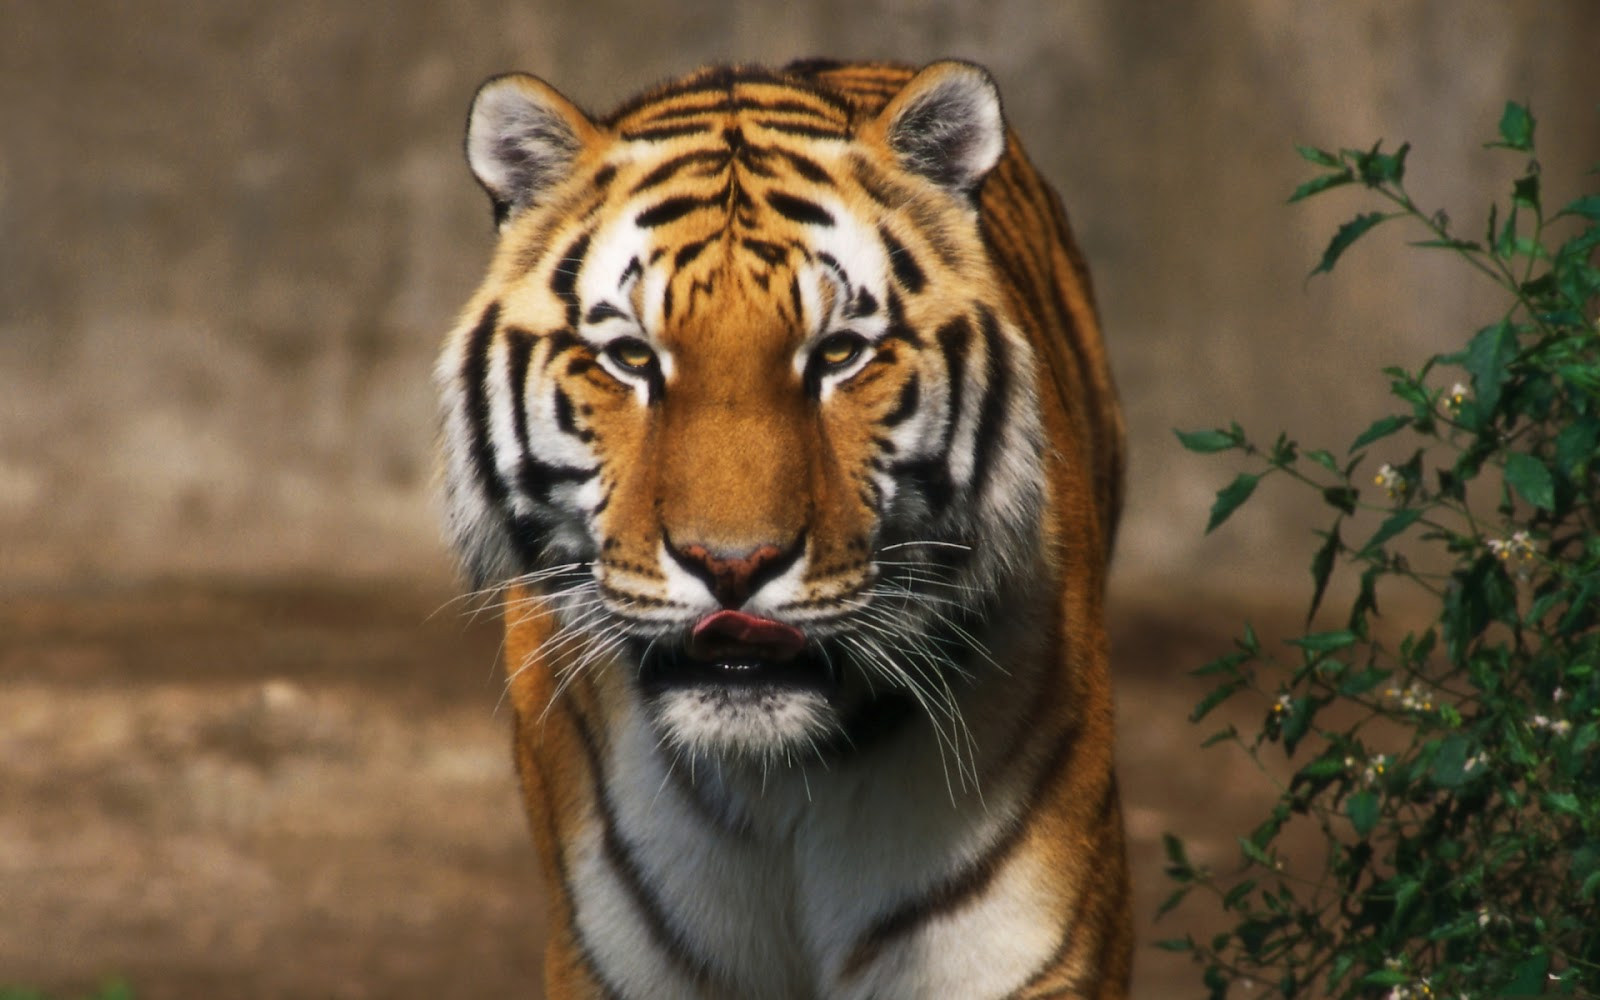 Wallpapers HD Tigers And Lions Wallpapers 1600x1000